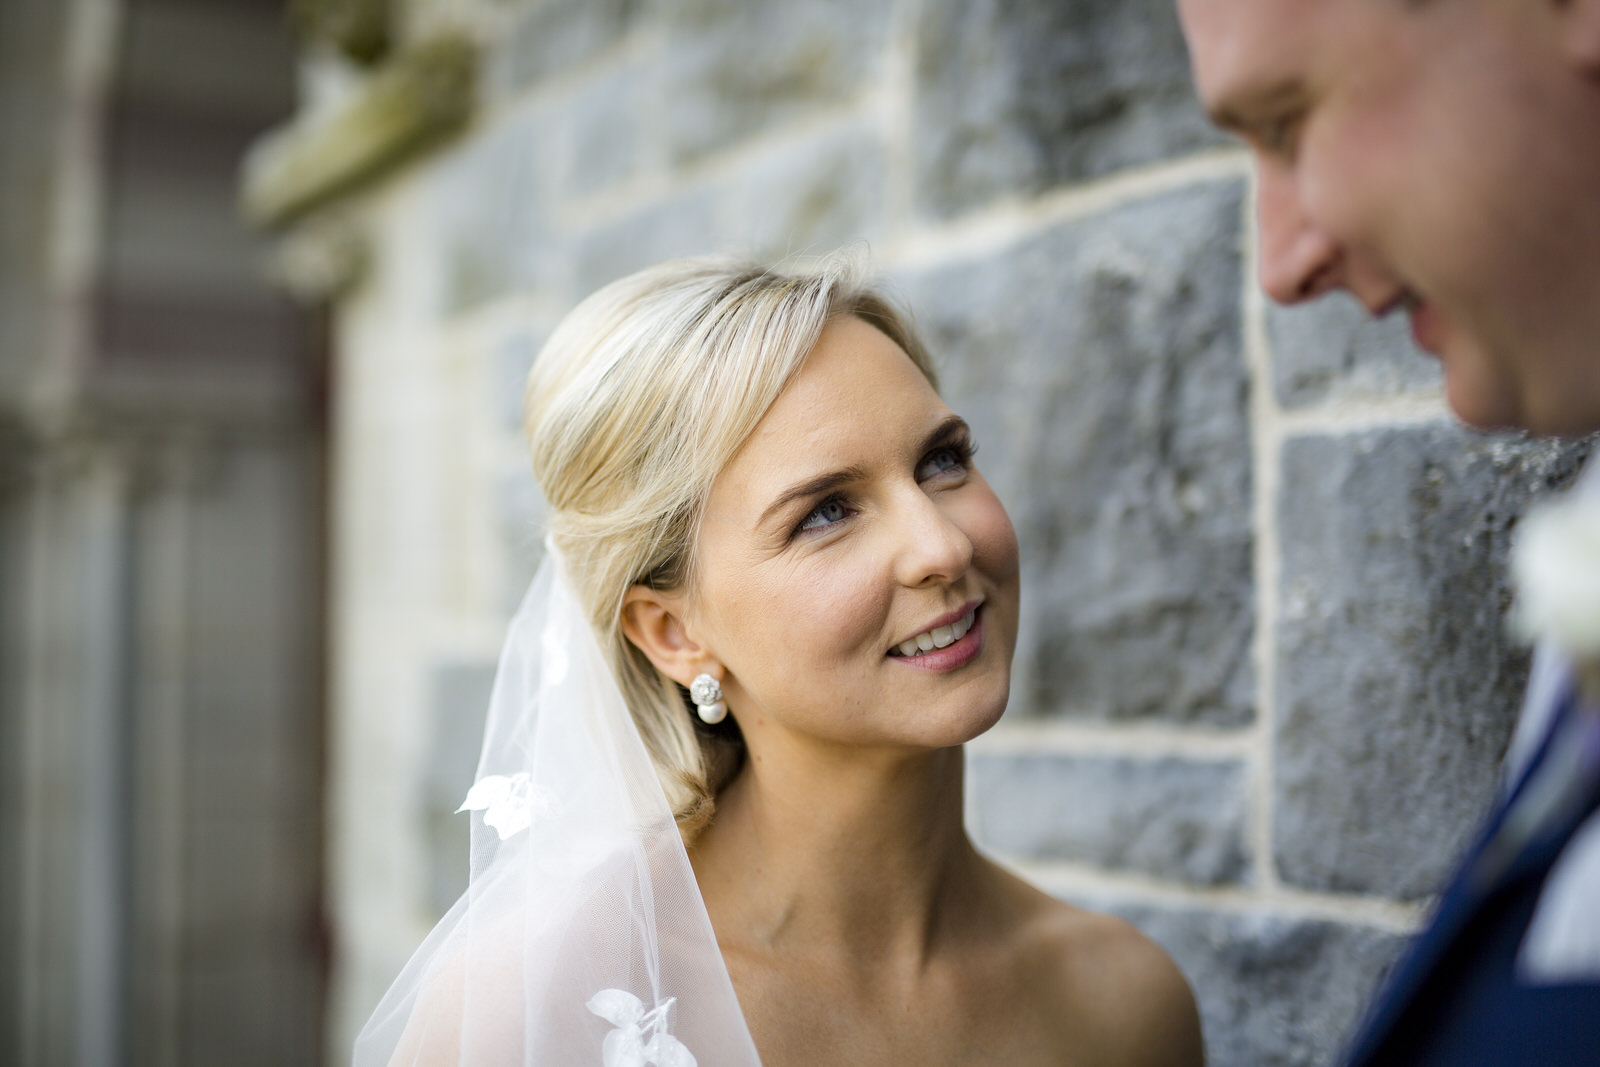 Ashley_park_wedding_photographer_ireland_a164.jpg